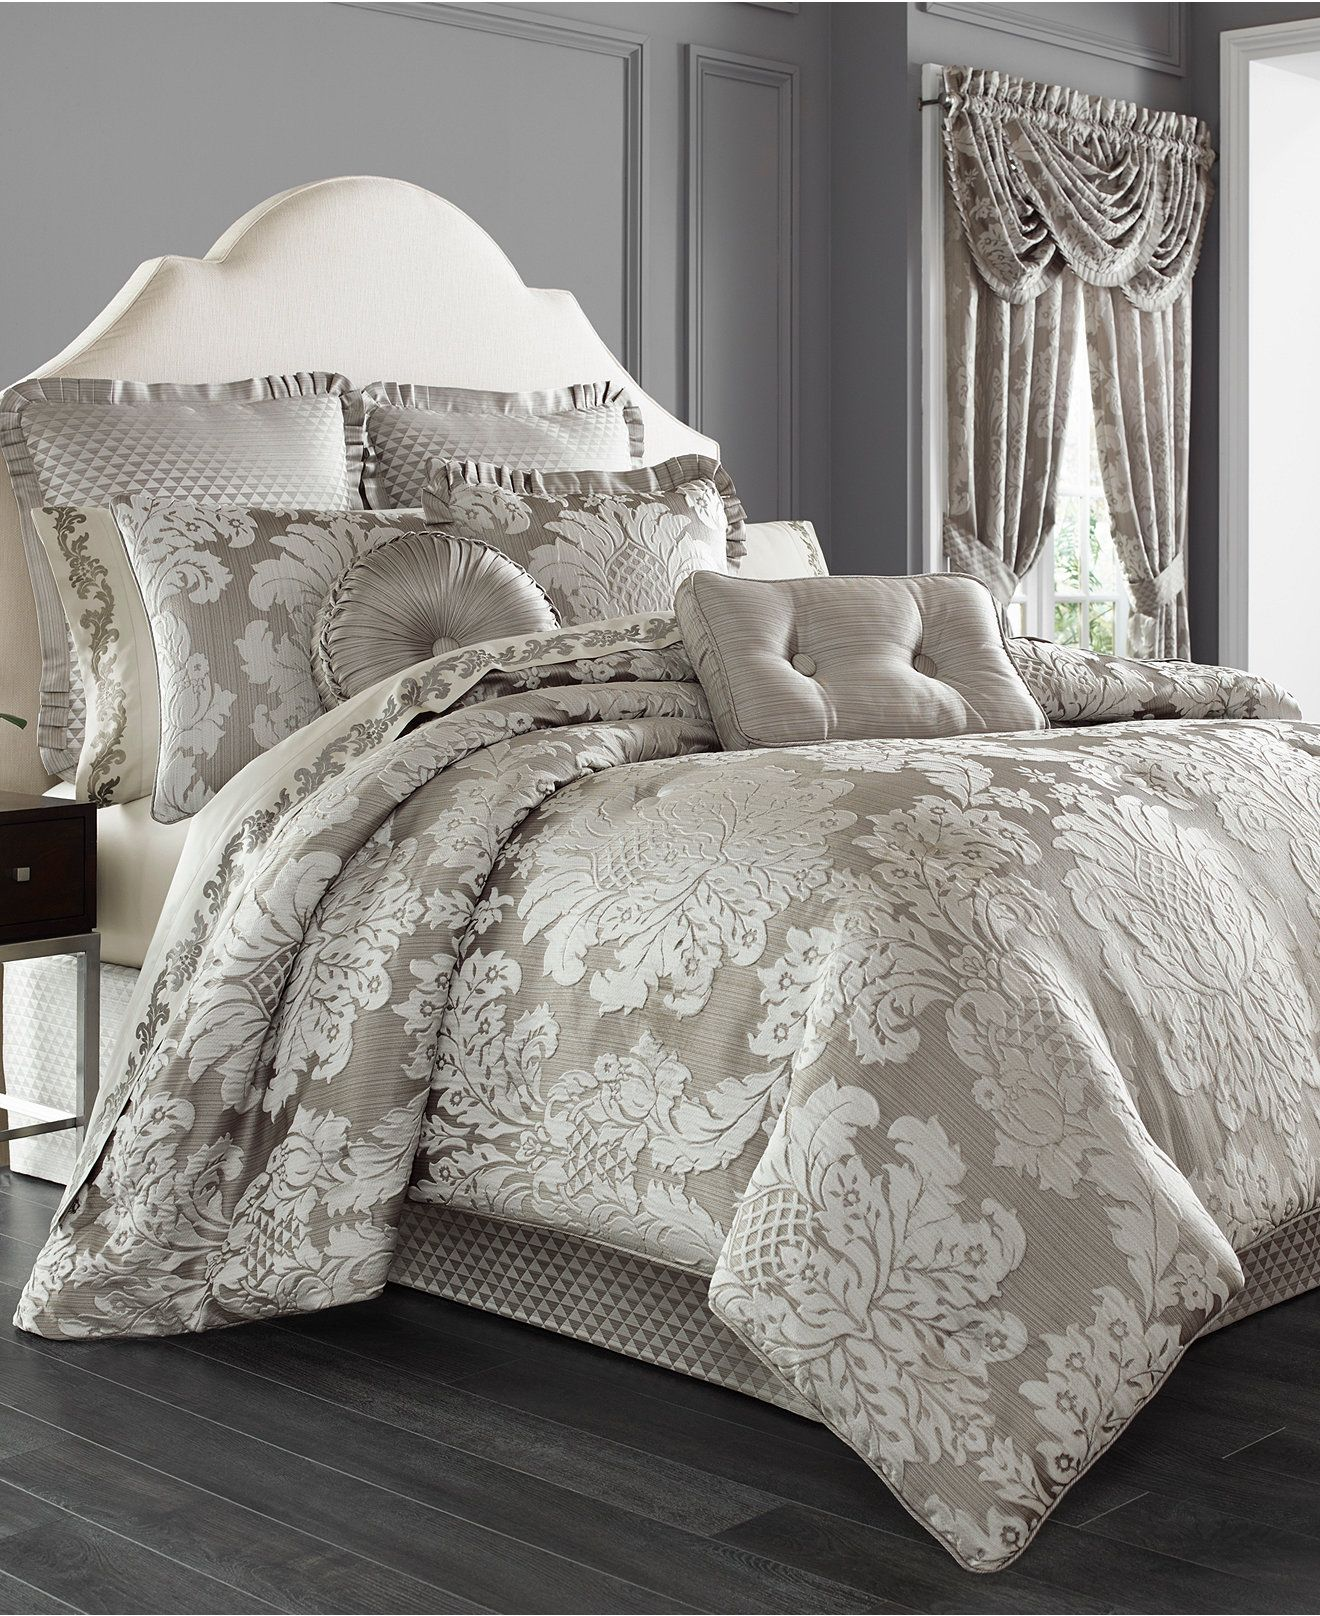 j queen new york chandelier 4pc bedding collection bedding collections bed u0026 - J Queen New York Bedding